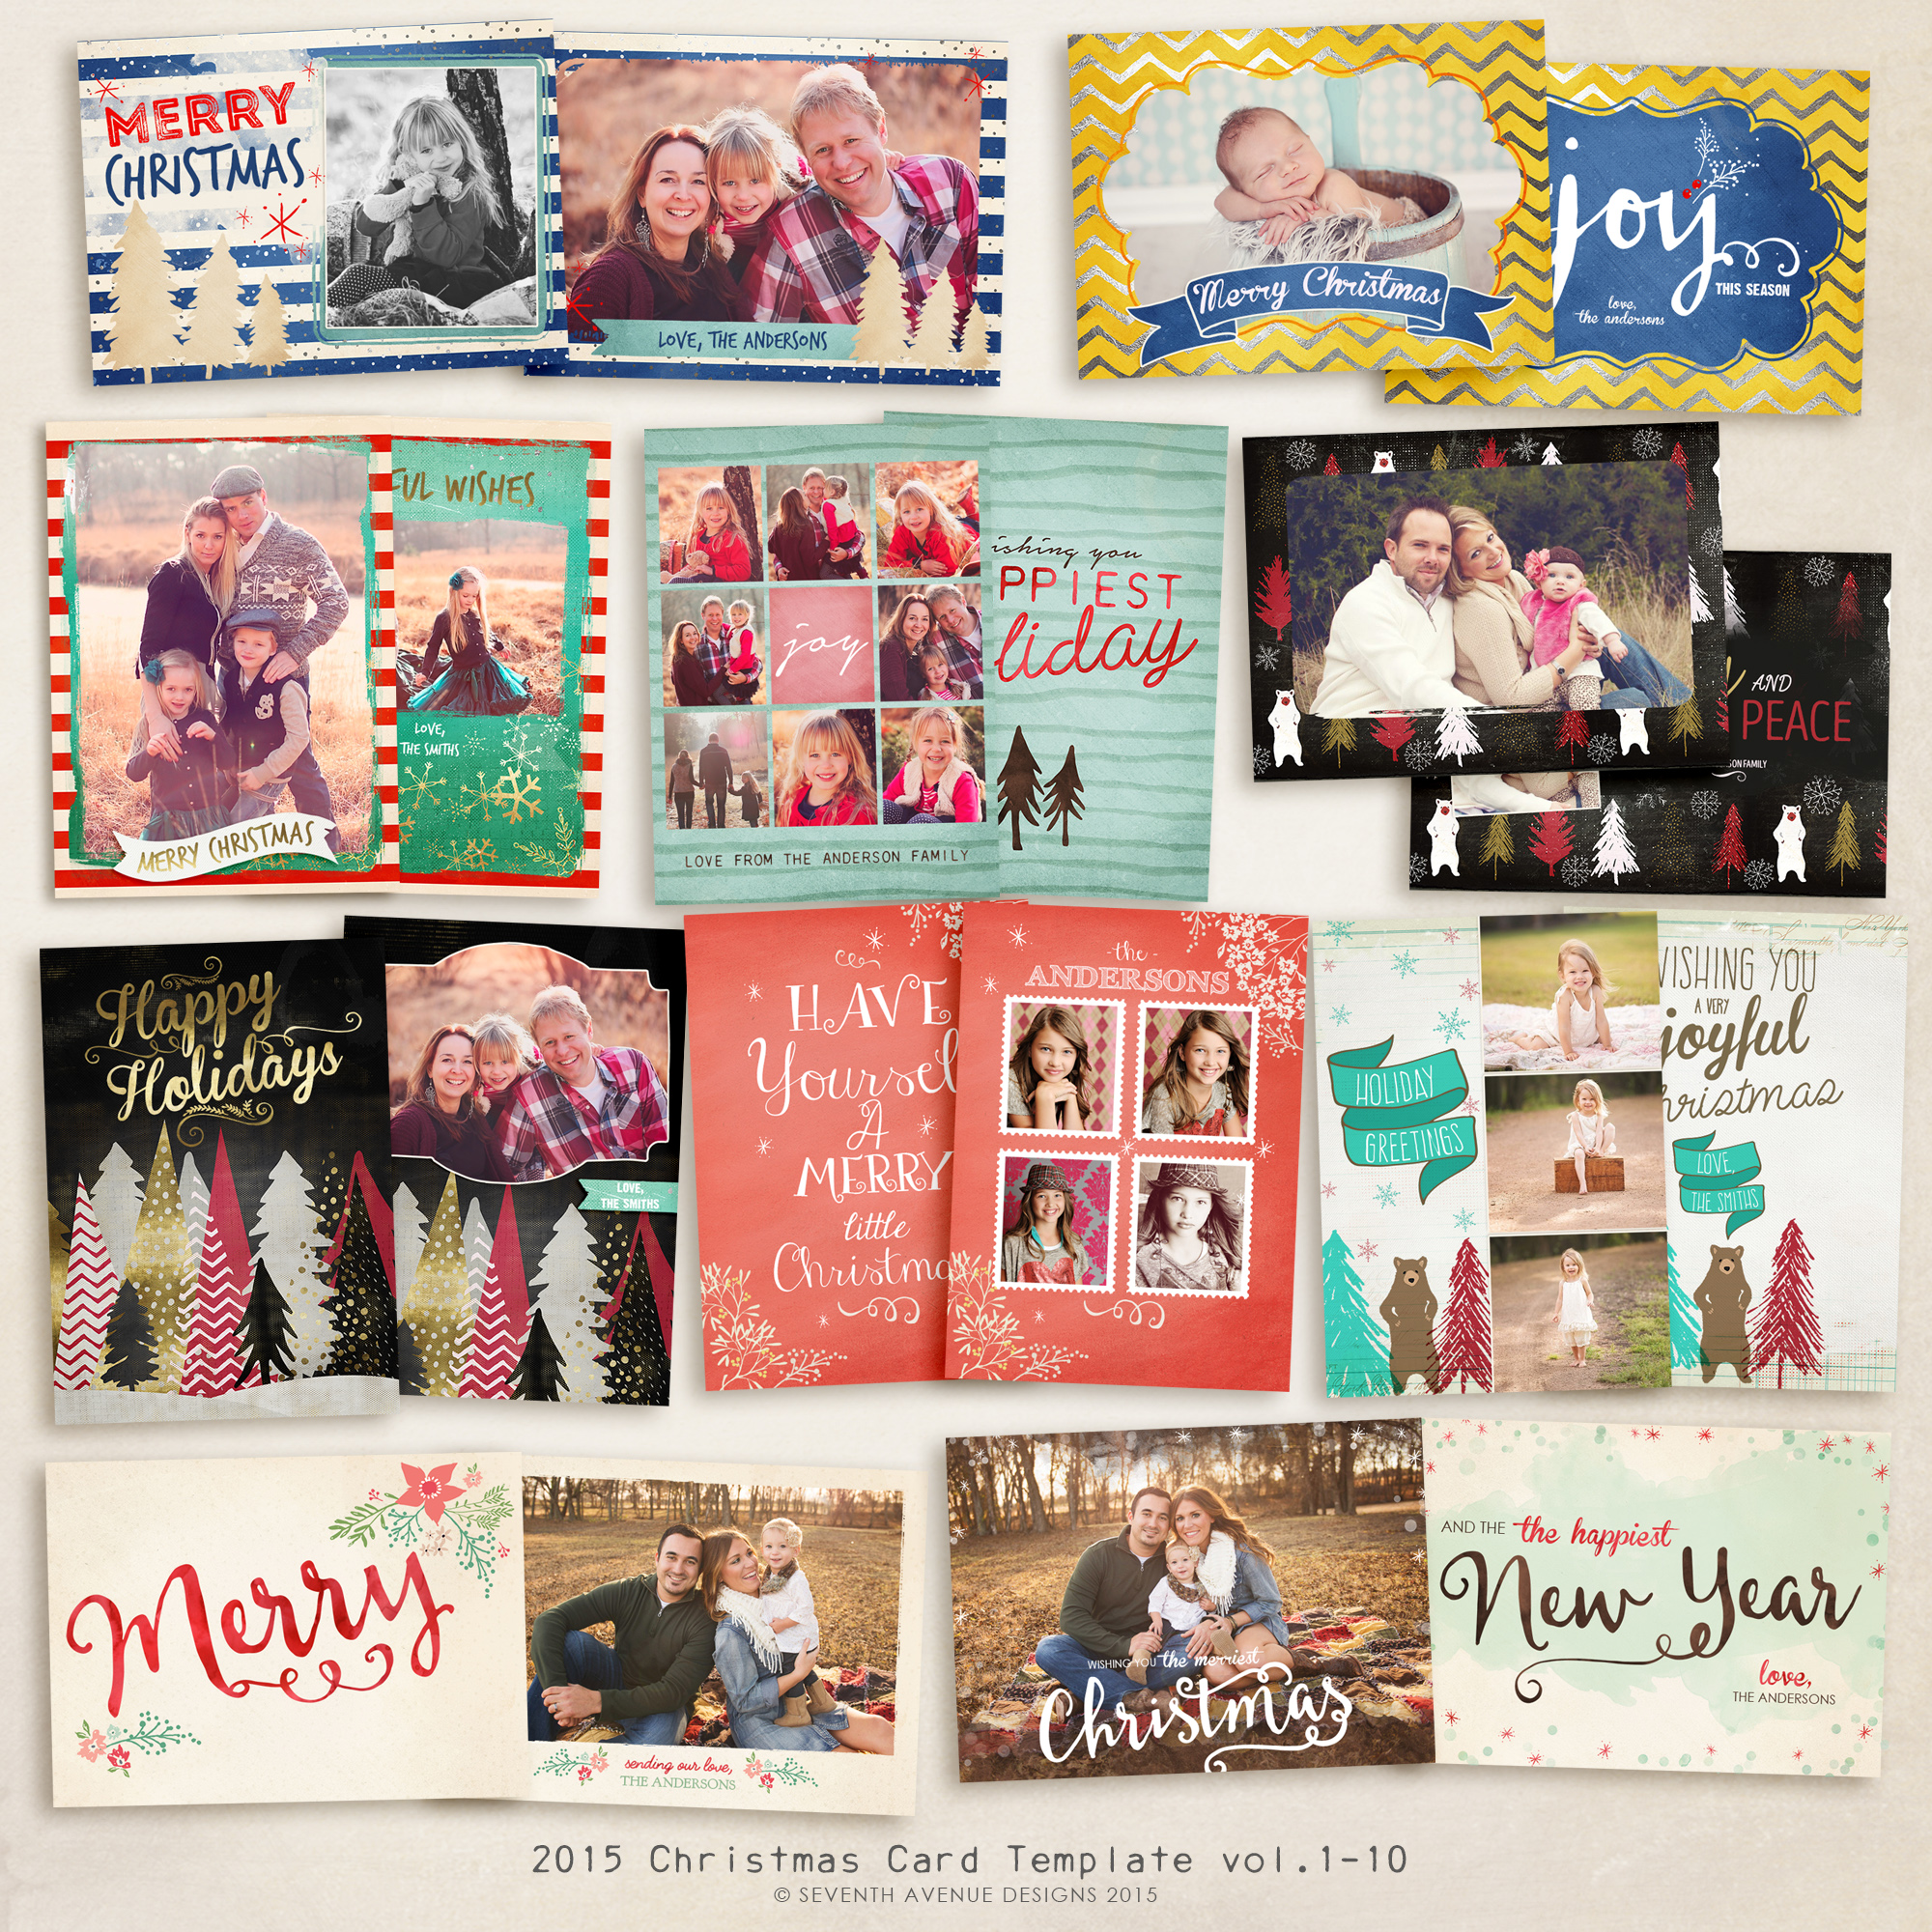 2015 Christmas Card Templates vol.1-10 -- 7x5 inch card template